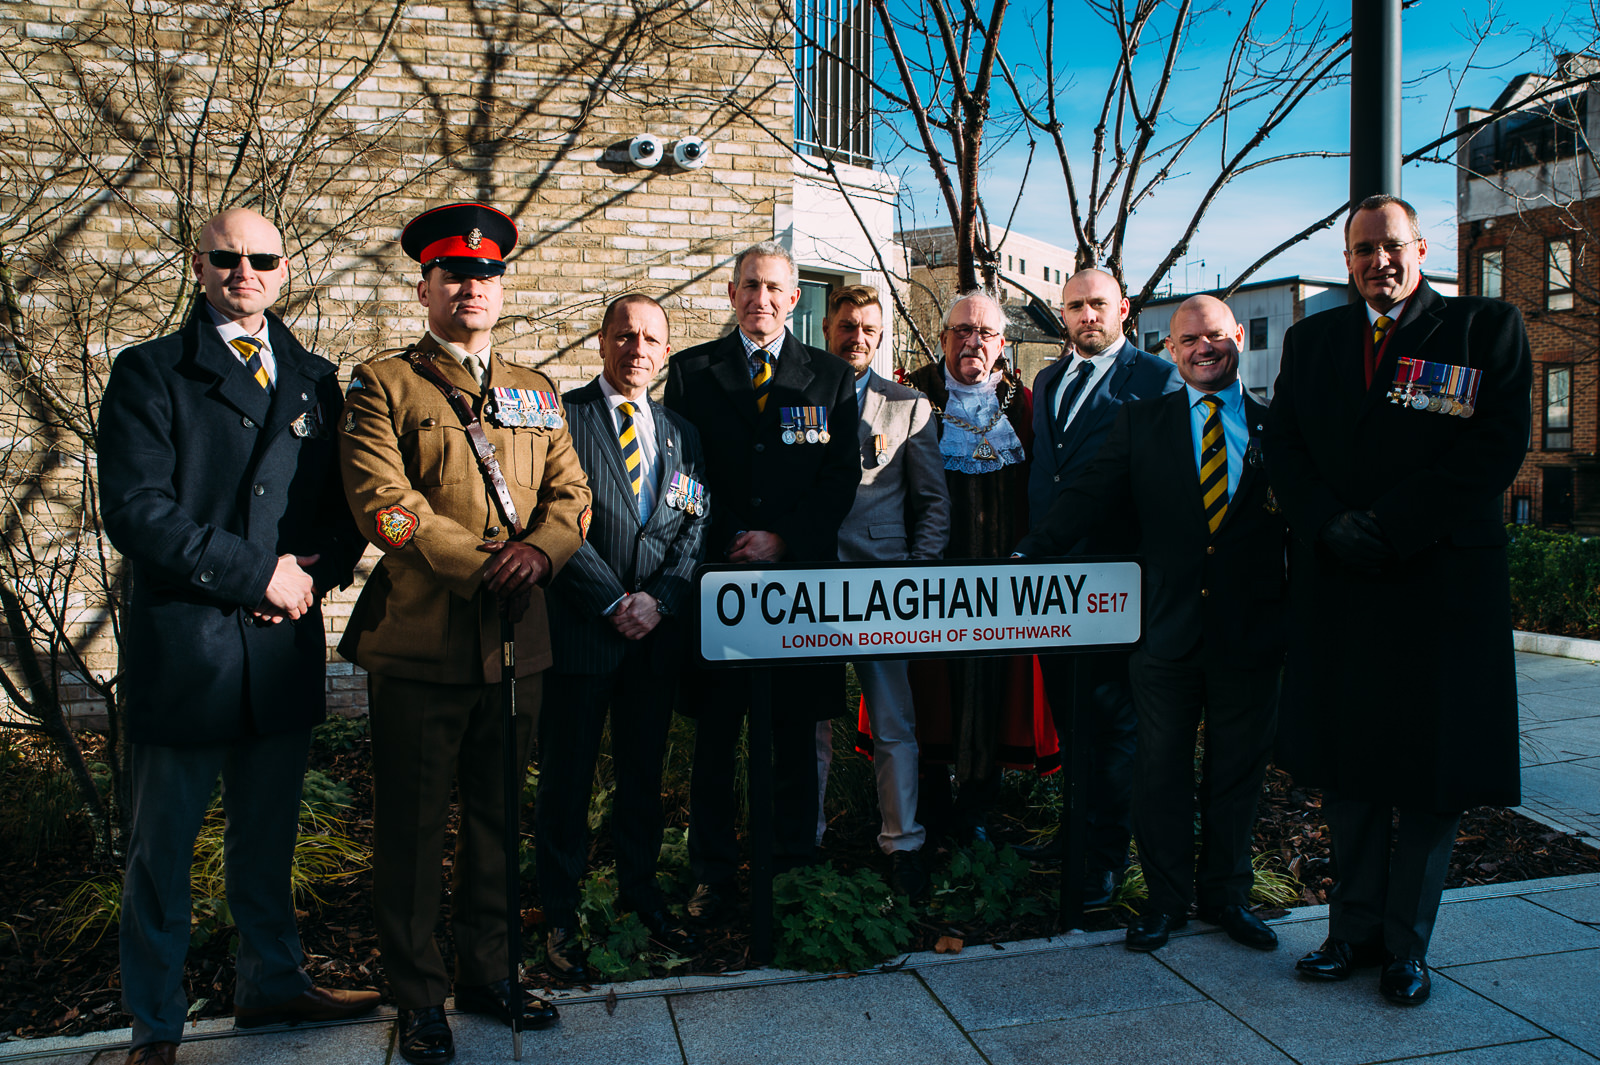 The opening ceremony of O'Callaghan Way, Elephant and Castle, London